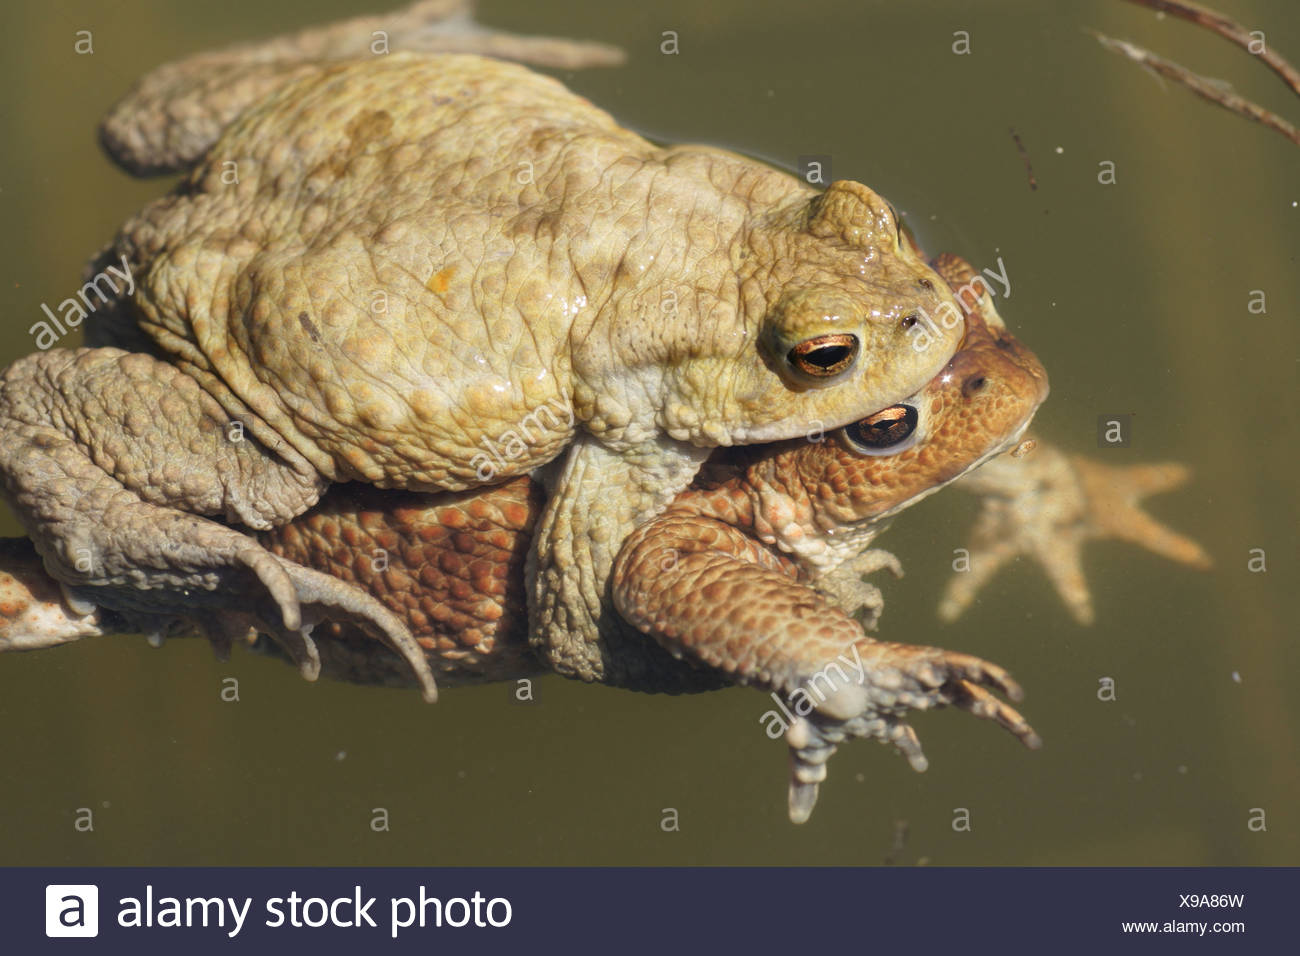 Toads - Stock Image